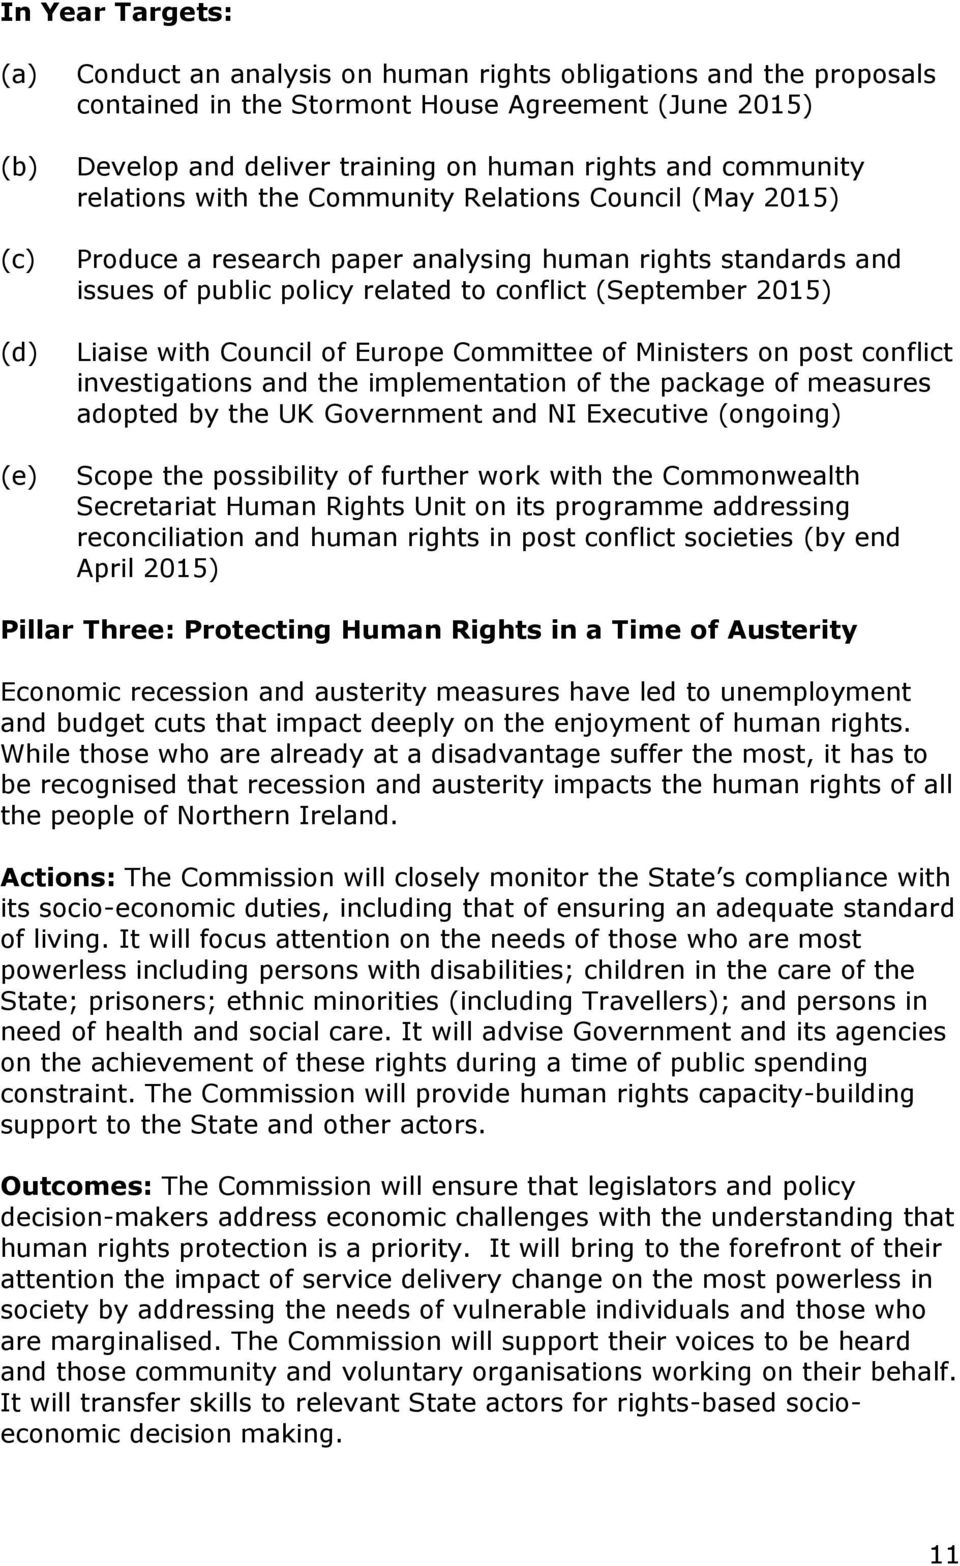 2015) Liaise with Council of Europe Committee of Ministers on post conflict investigations and the implementation of the package of measures adopted by the UK Government and NI Executive (ongoing)